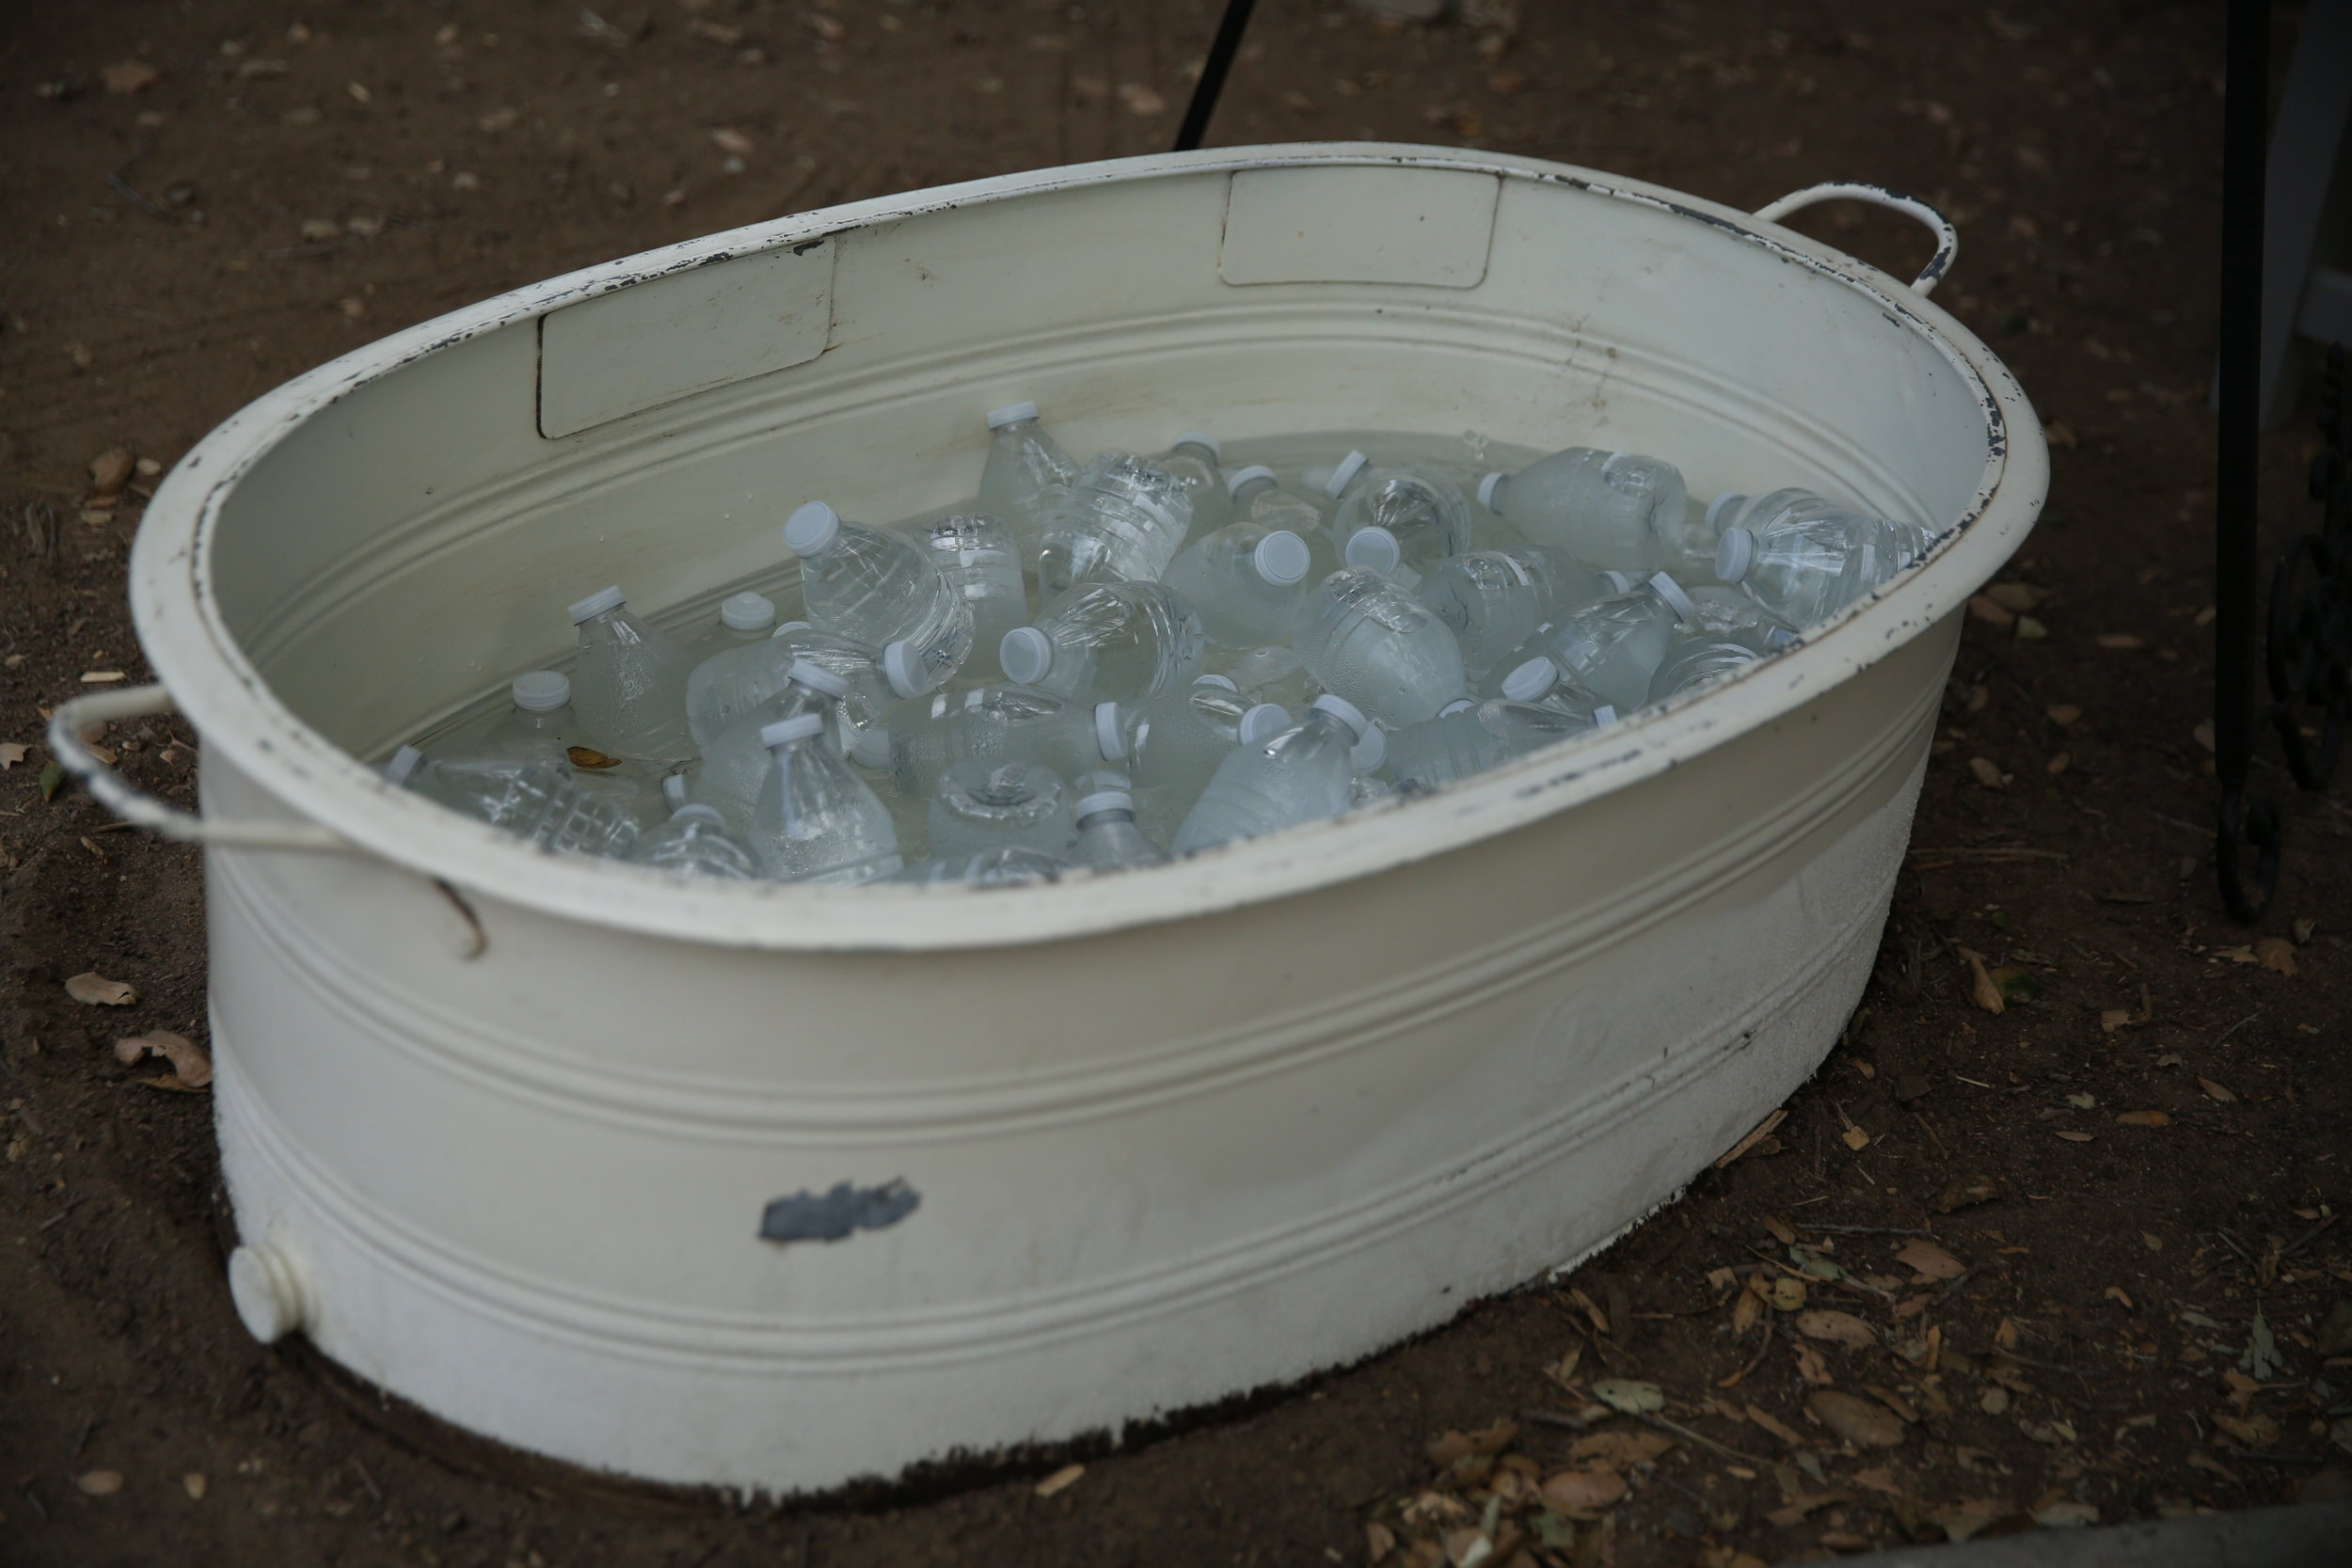 off white galvanized tub filled with water and ice. Beverage dispensers